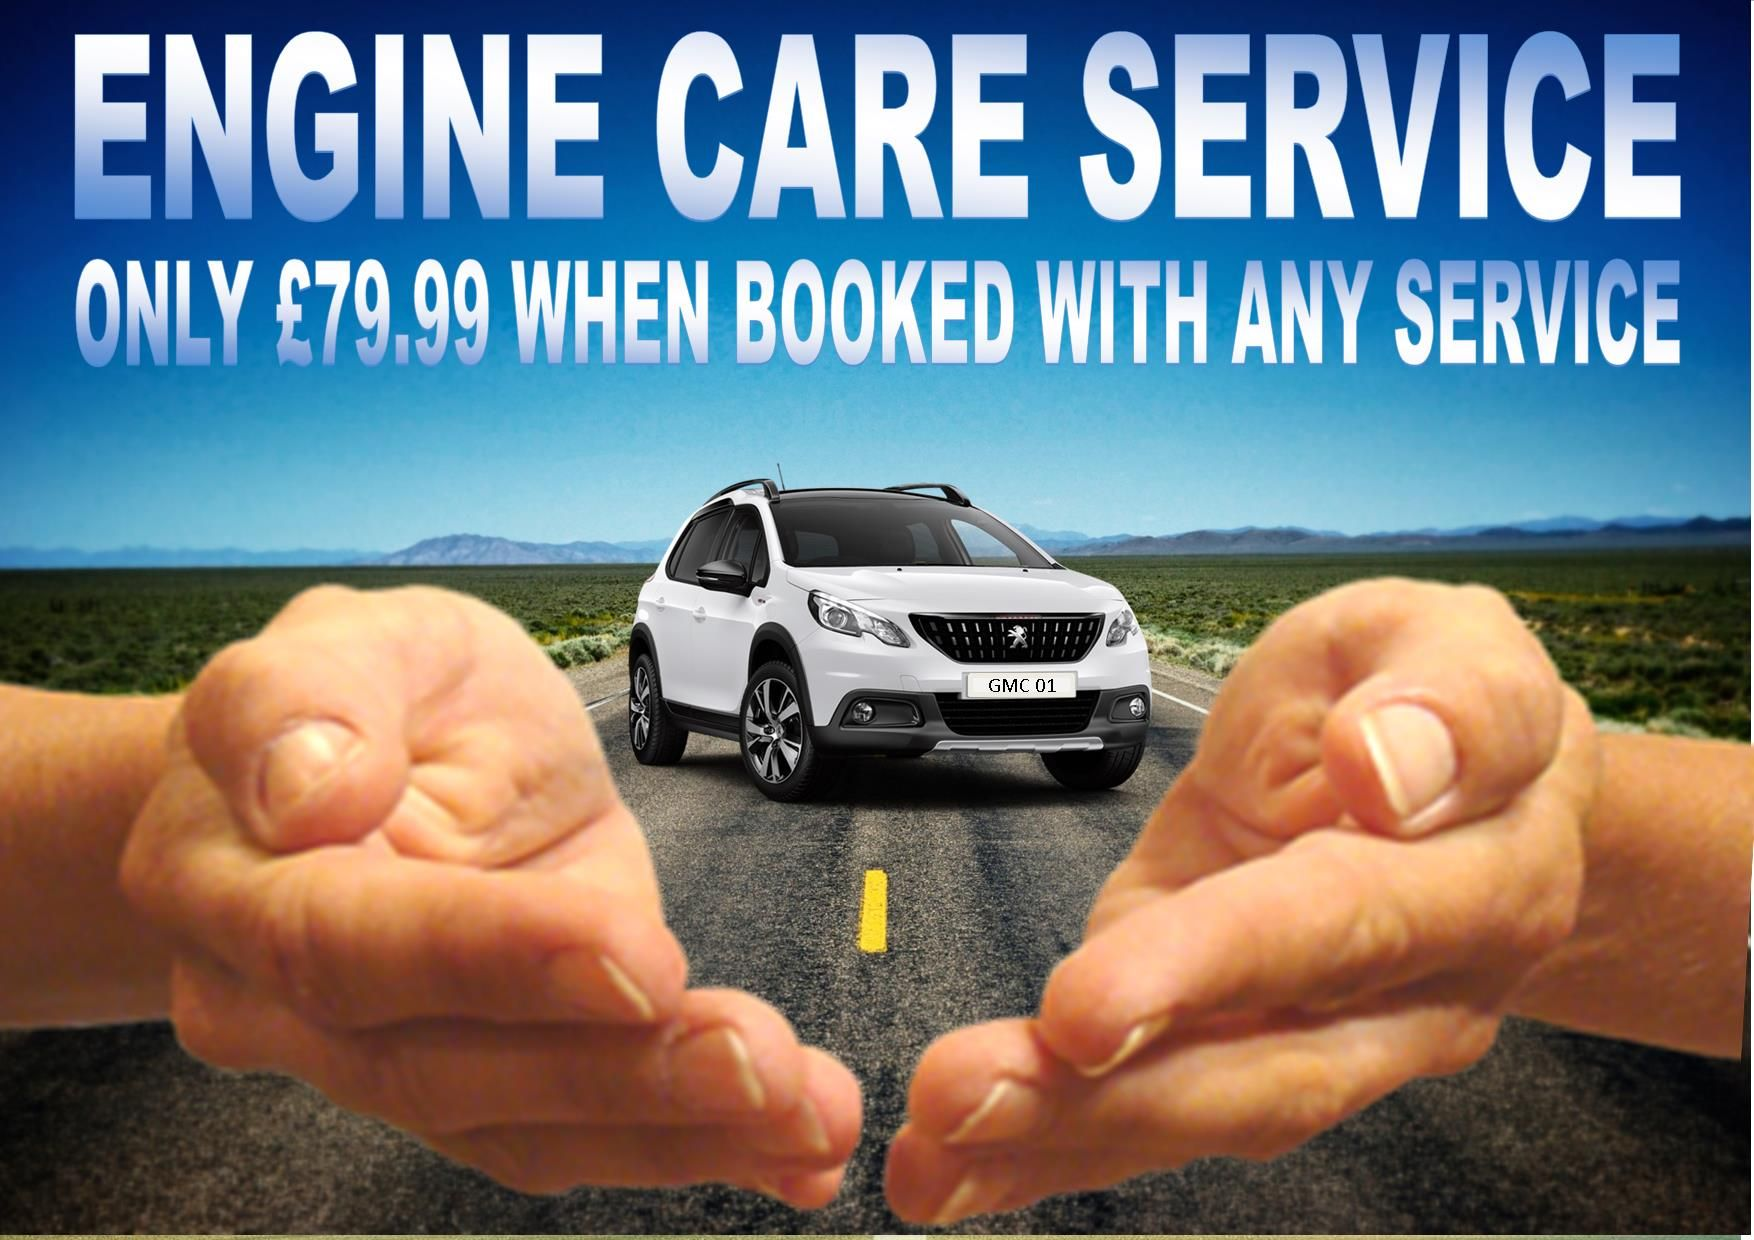 ENGINE CARE SERVICE